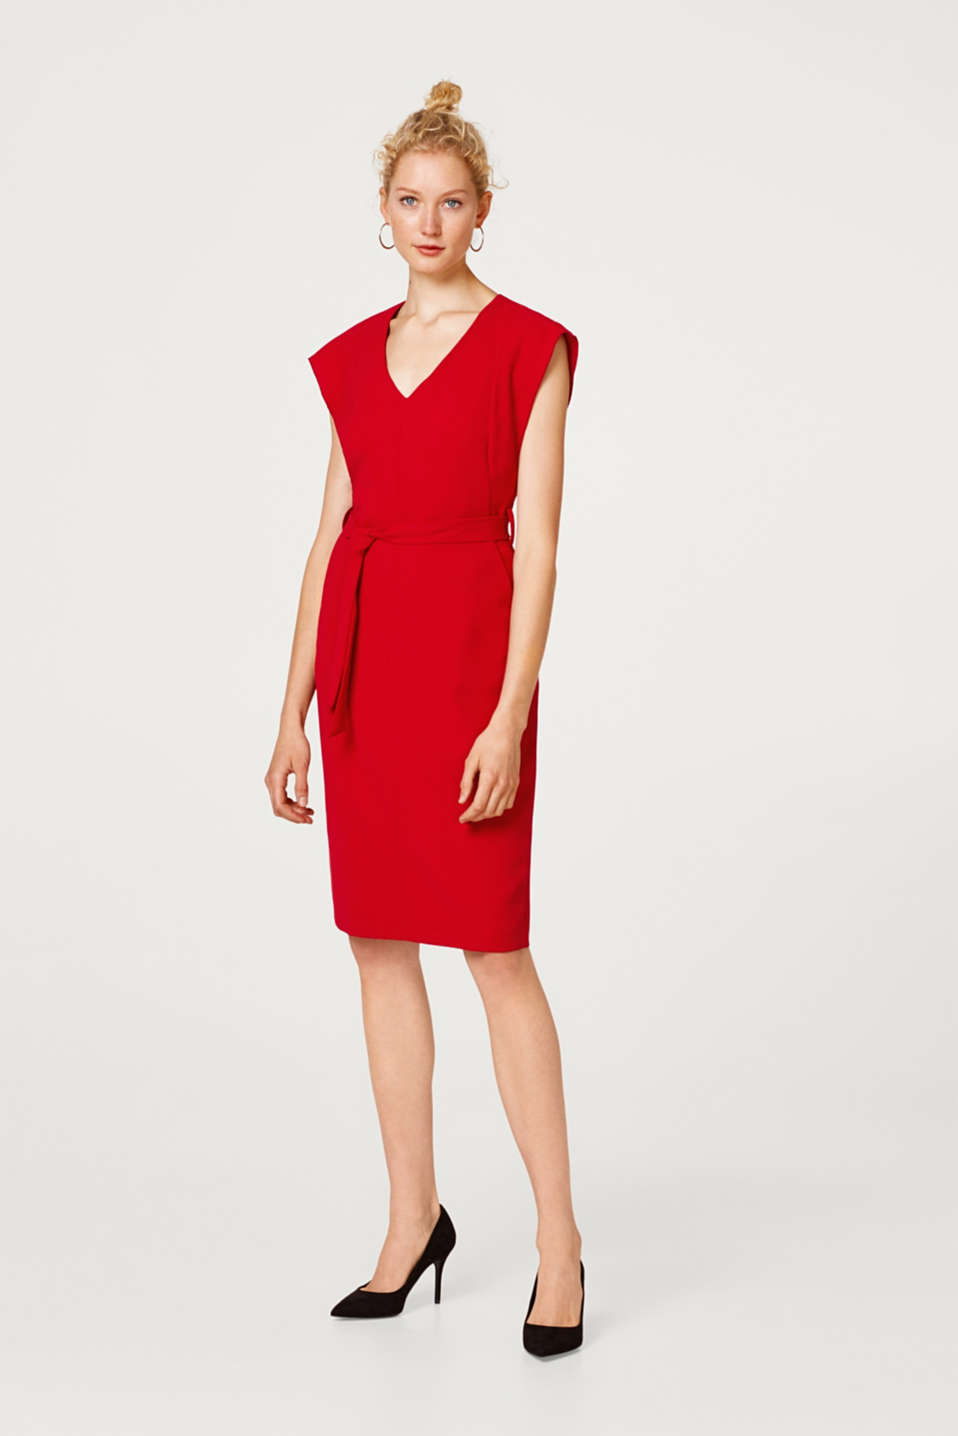 Esprit - Woven dress with cap sleeves and a tie-around belt